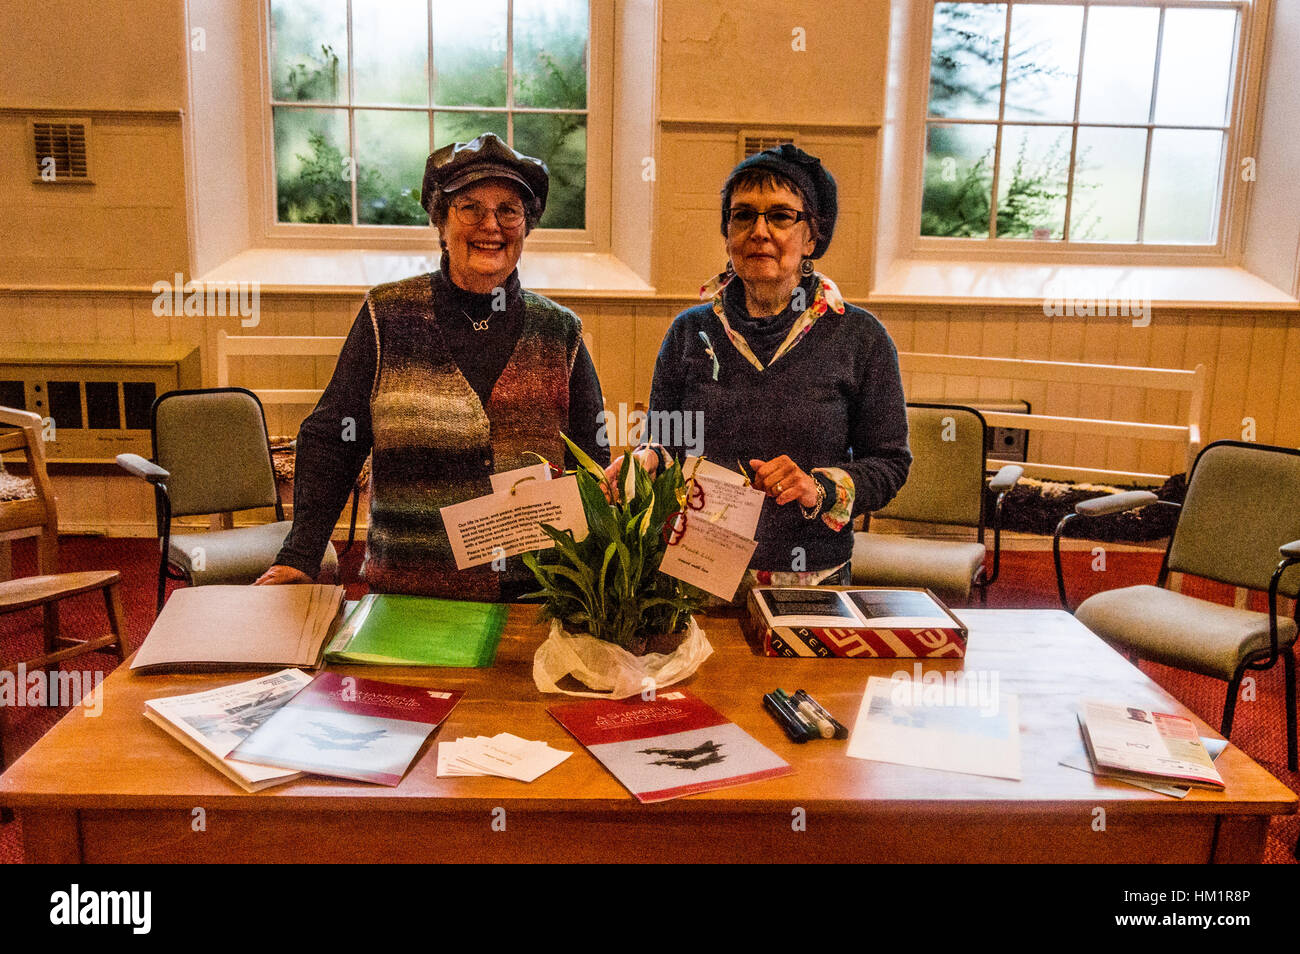 Hereford, Herefordshire, UK. 1st February 2017. Murri Smith (l) and Kim Holroyd (r) pose with Peace Lillys which - Stock Image